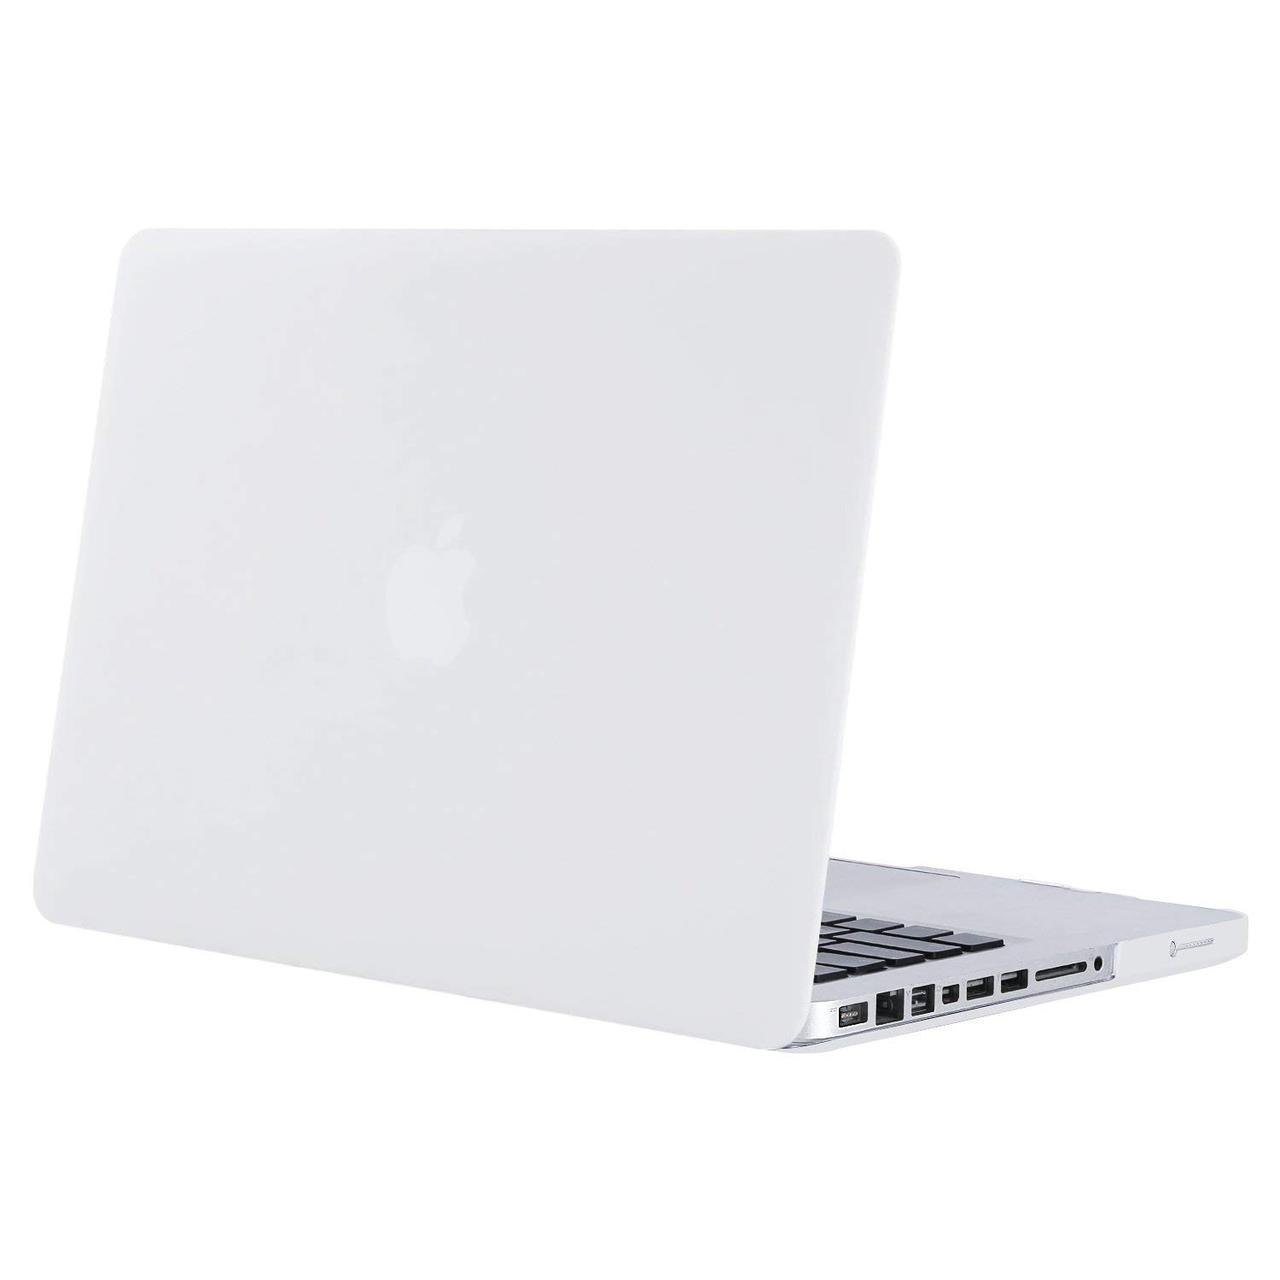 "Чехол накладка DDC пластик для MacBook Pro 13"" (2008-2011) matte white"